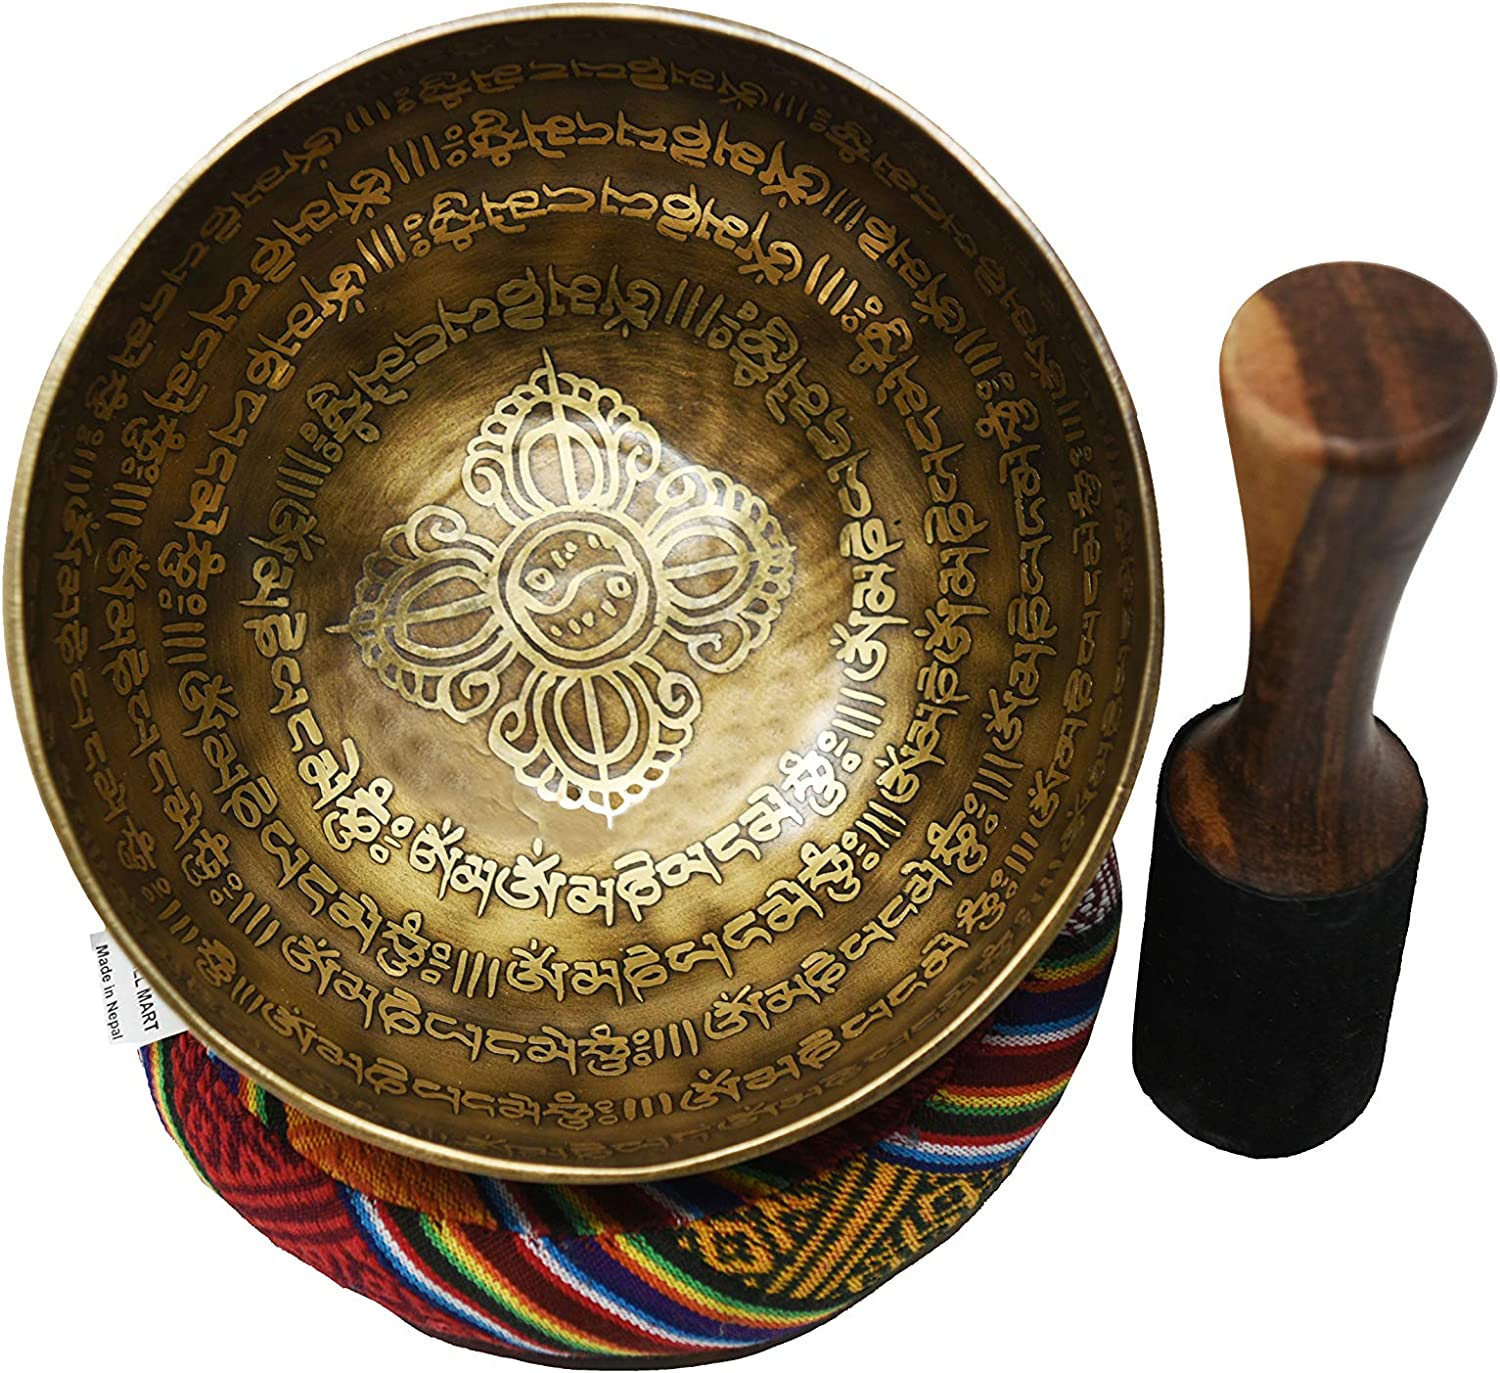 Healing Relaxation Therapy Great for Meditation Tibetan Best Gift Product Chakra Healing Tibetan Singing Bowl Set Stress /& Anxiety Relief HandCrafted Antique Tibetan Singing Bowl Set